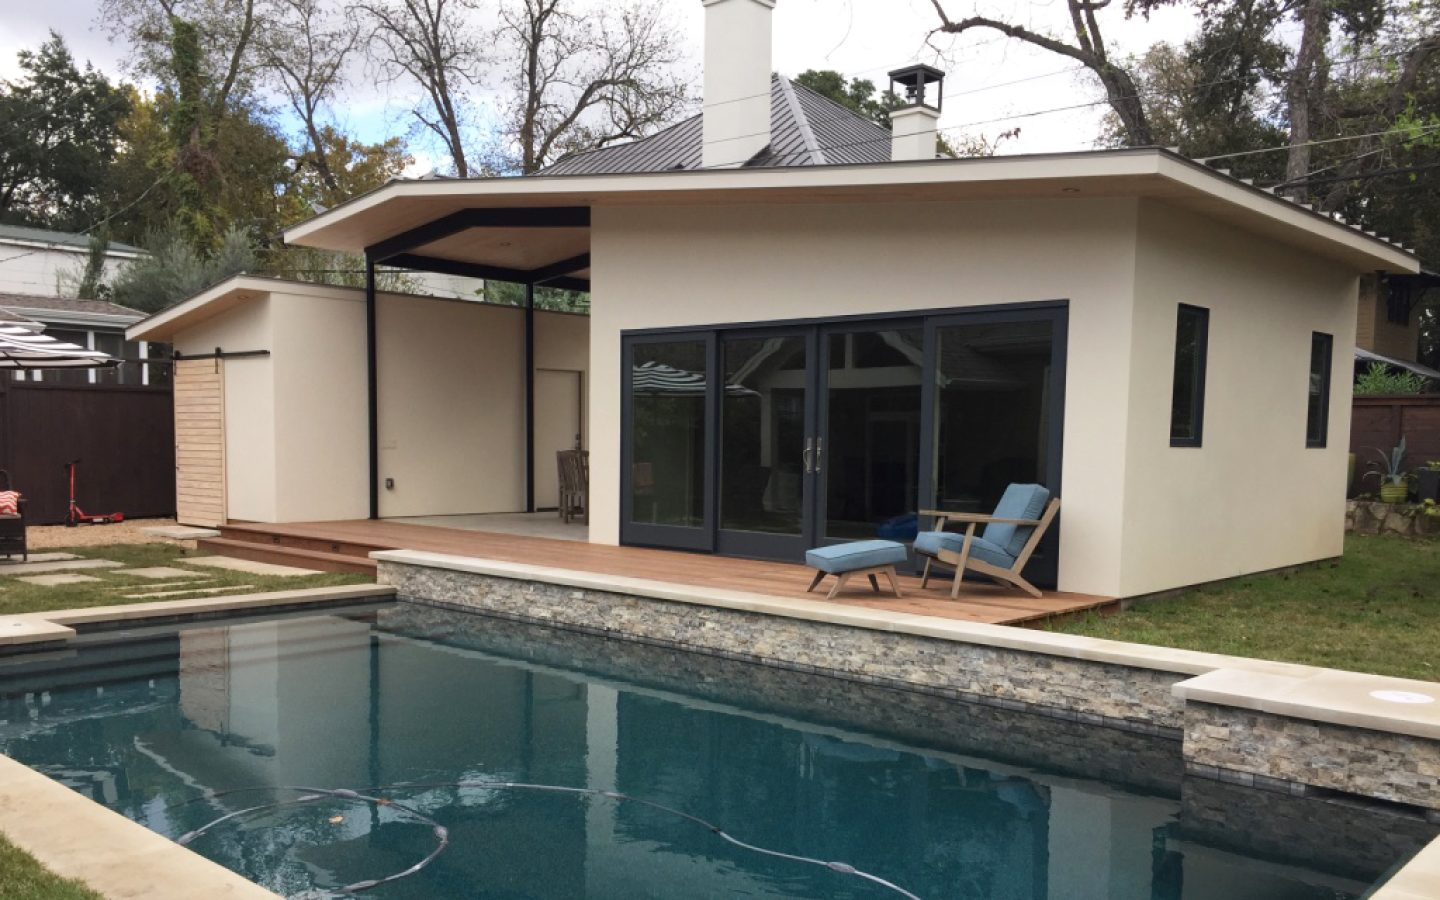 Poolhaus West Enfield Poolhouse Pollen Architecture Modern Architects